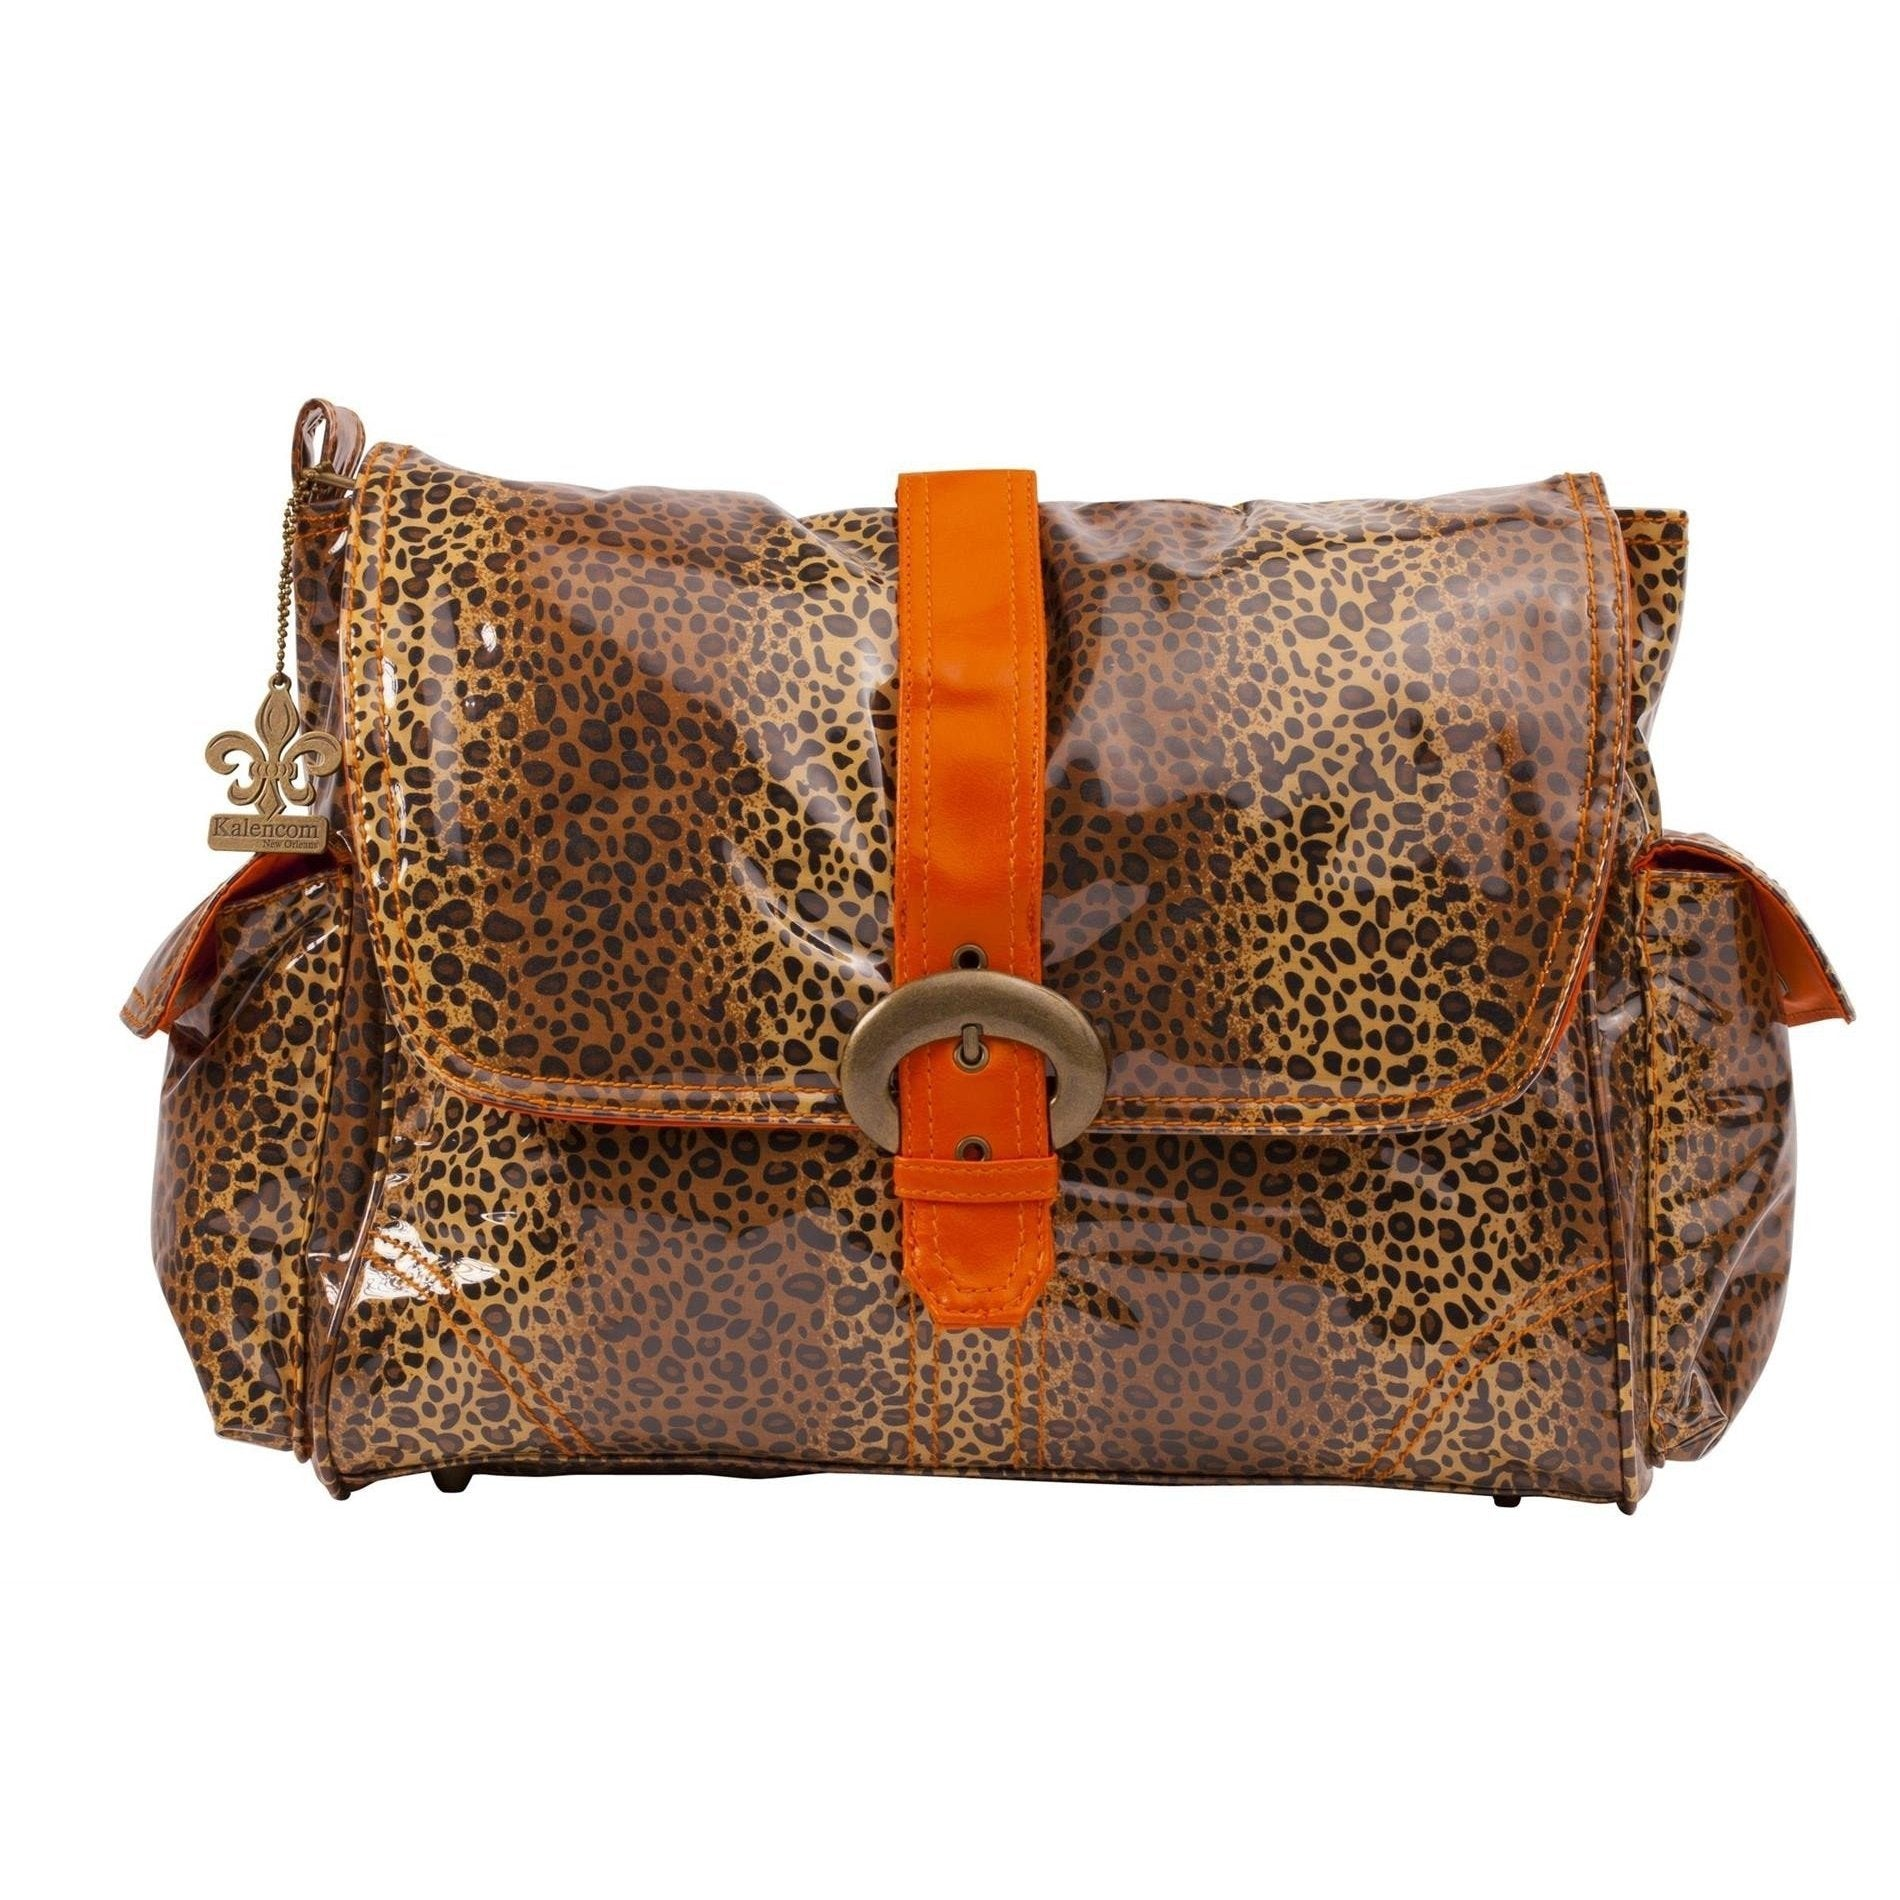 Leopard - Orange Laminated Buckle Diaper Bag | Style 2960 - Kalencom-Diaper Bags-Default-Jack and Jill Boutique